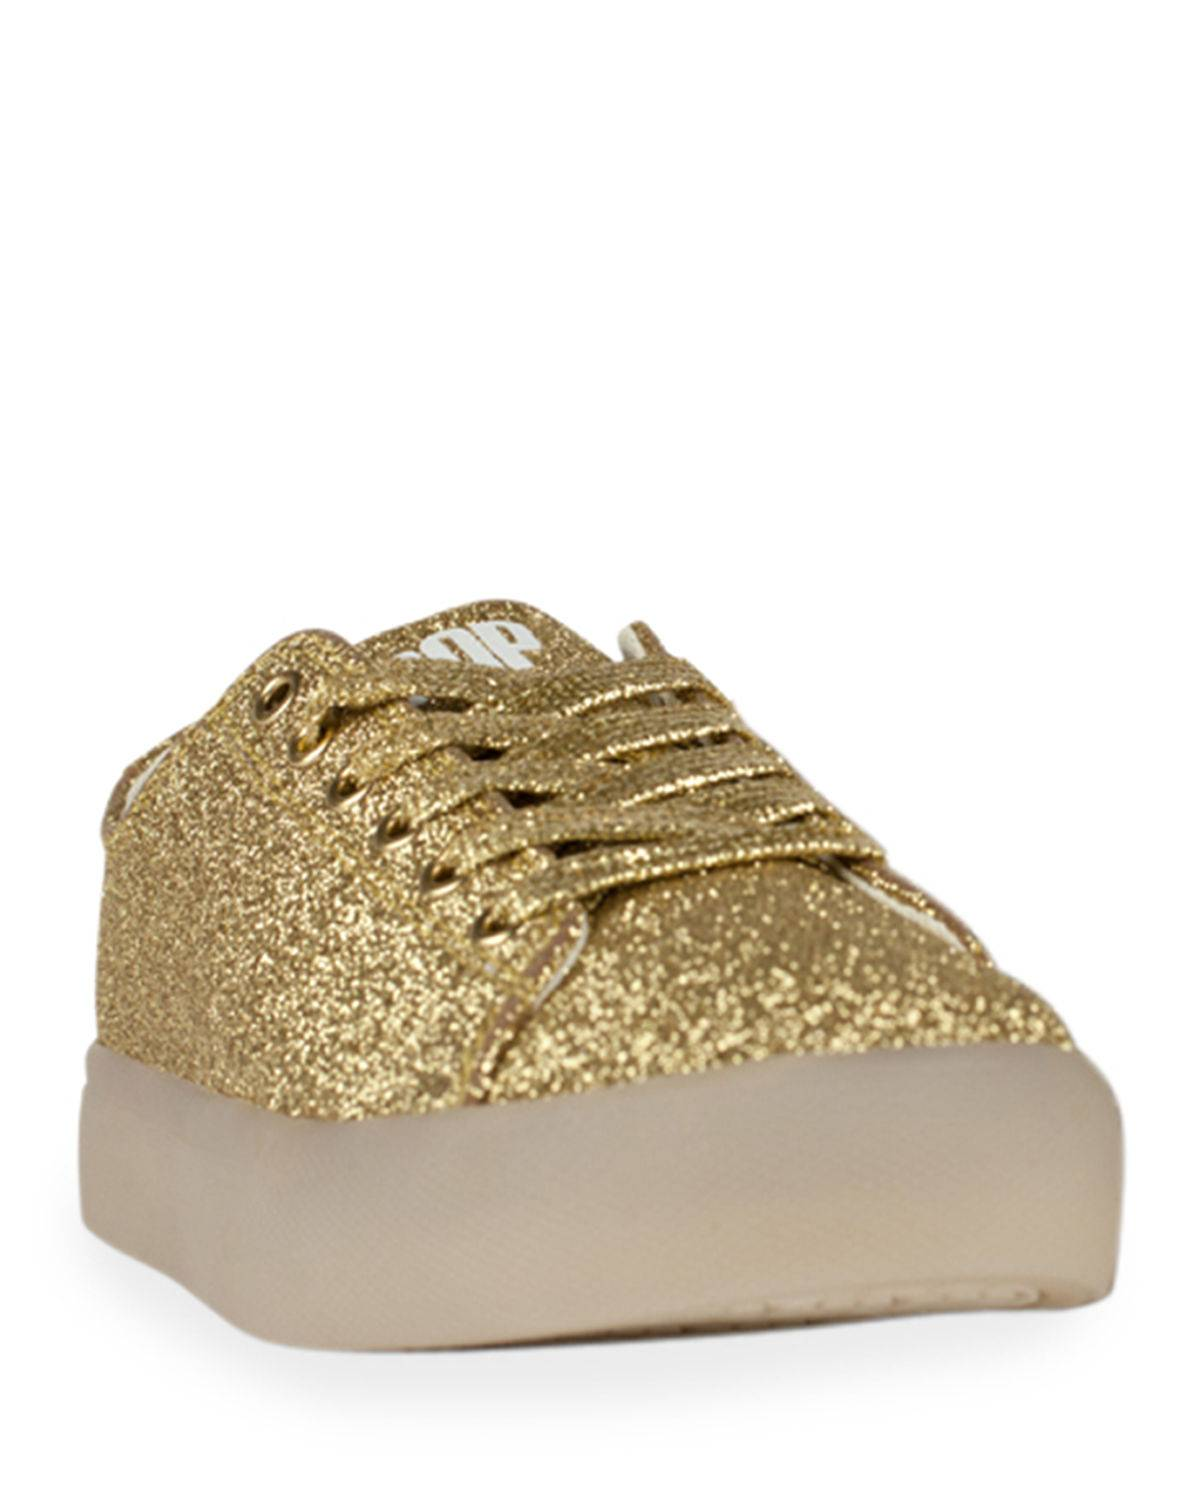 Pop Shoes EZ Glitter Light-Up Sneakers, Toddler/Kids - Size: 11 Tod